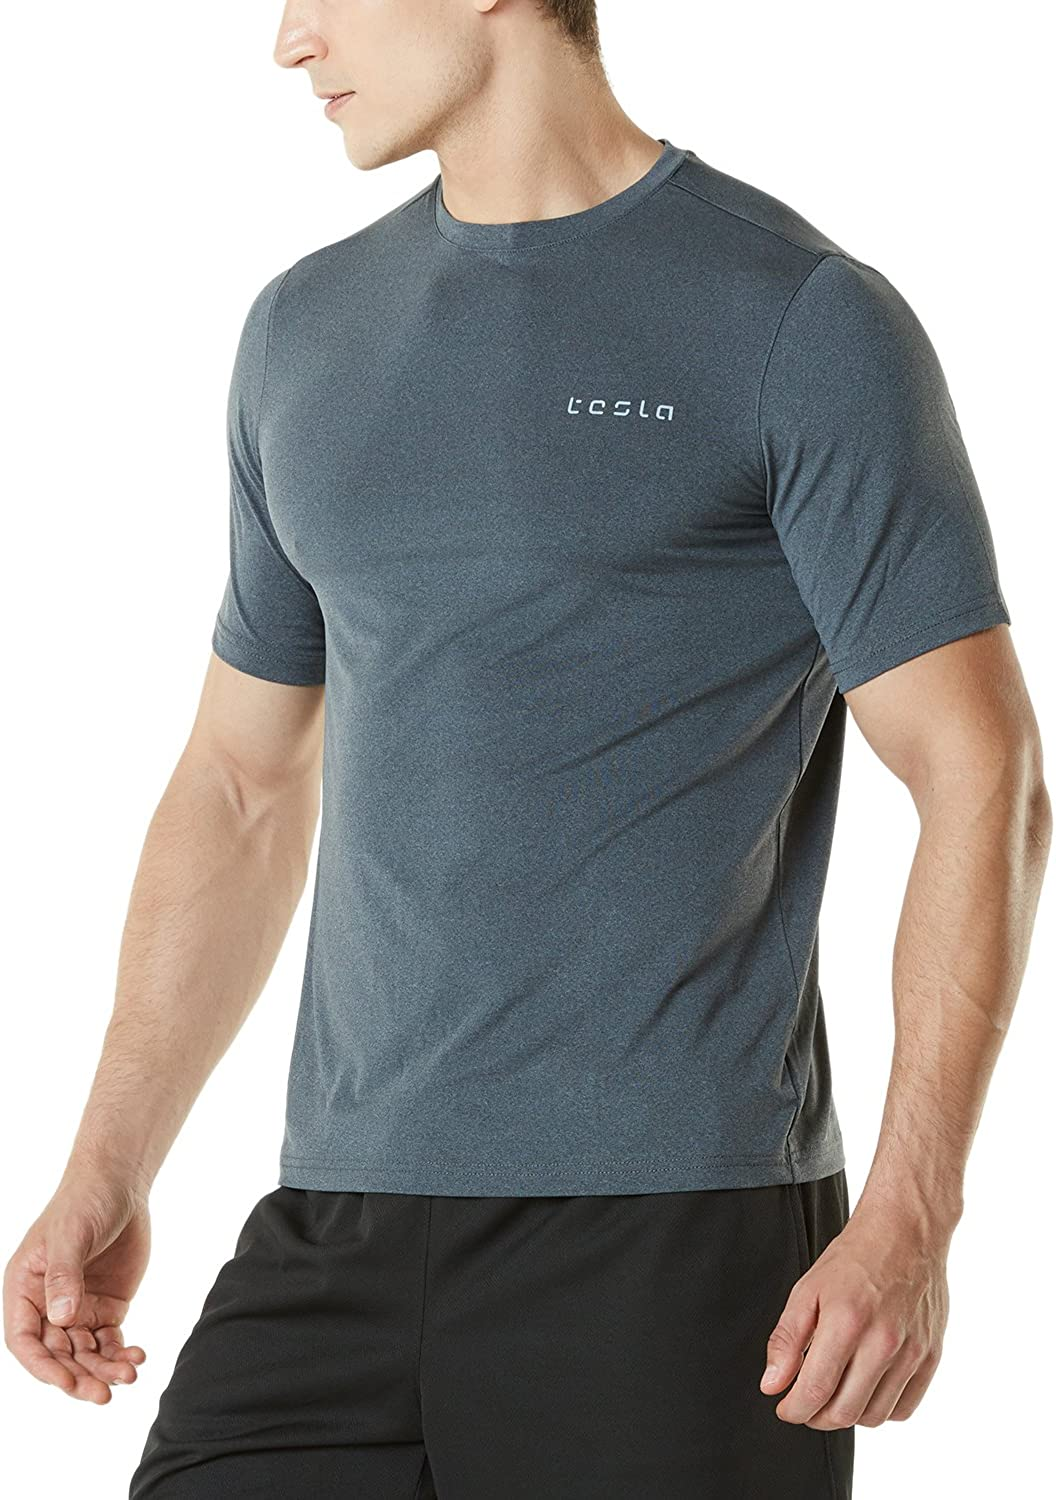 TSLA TMMTS08CHC_Small Men's HyperDri Short Sleeve TShirt Athletic Cool Running Top MTS08